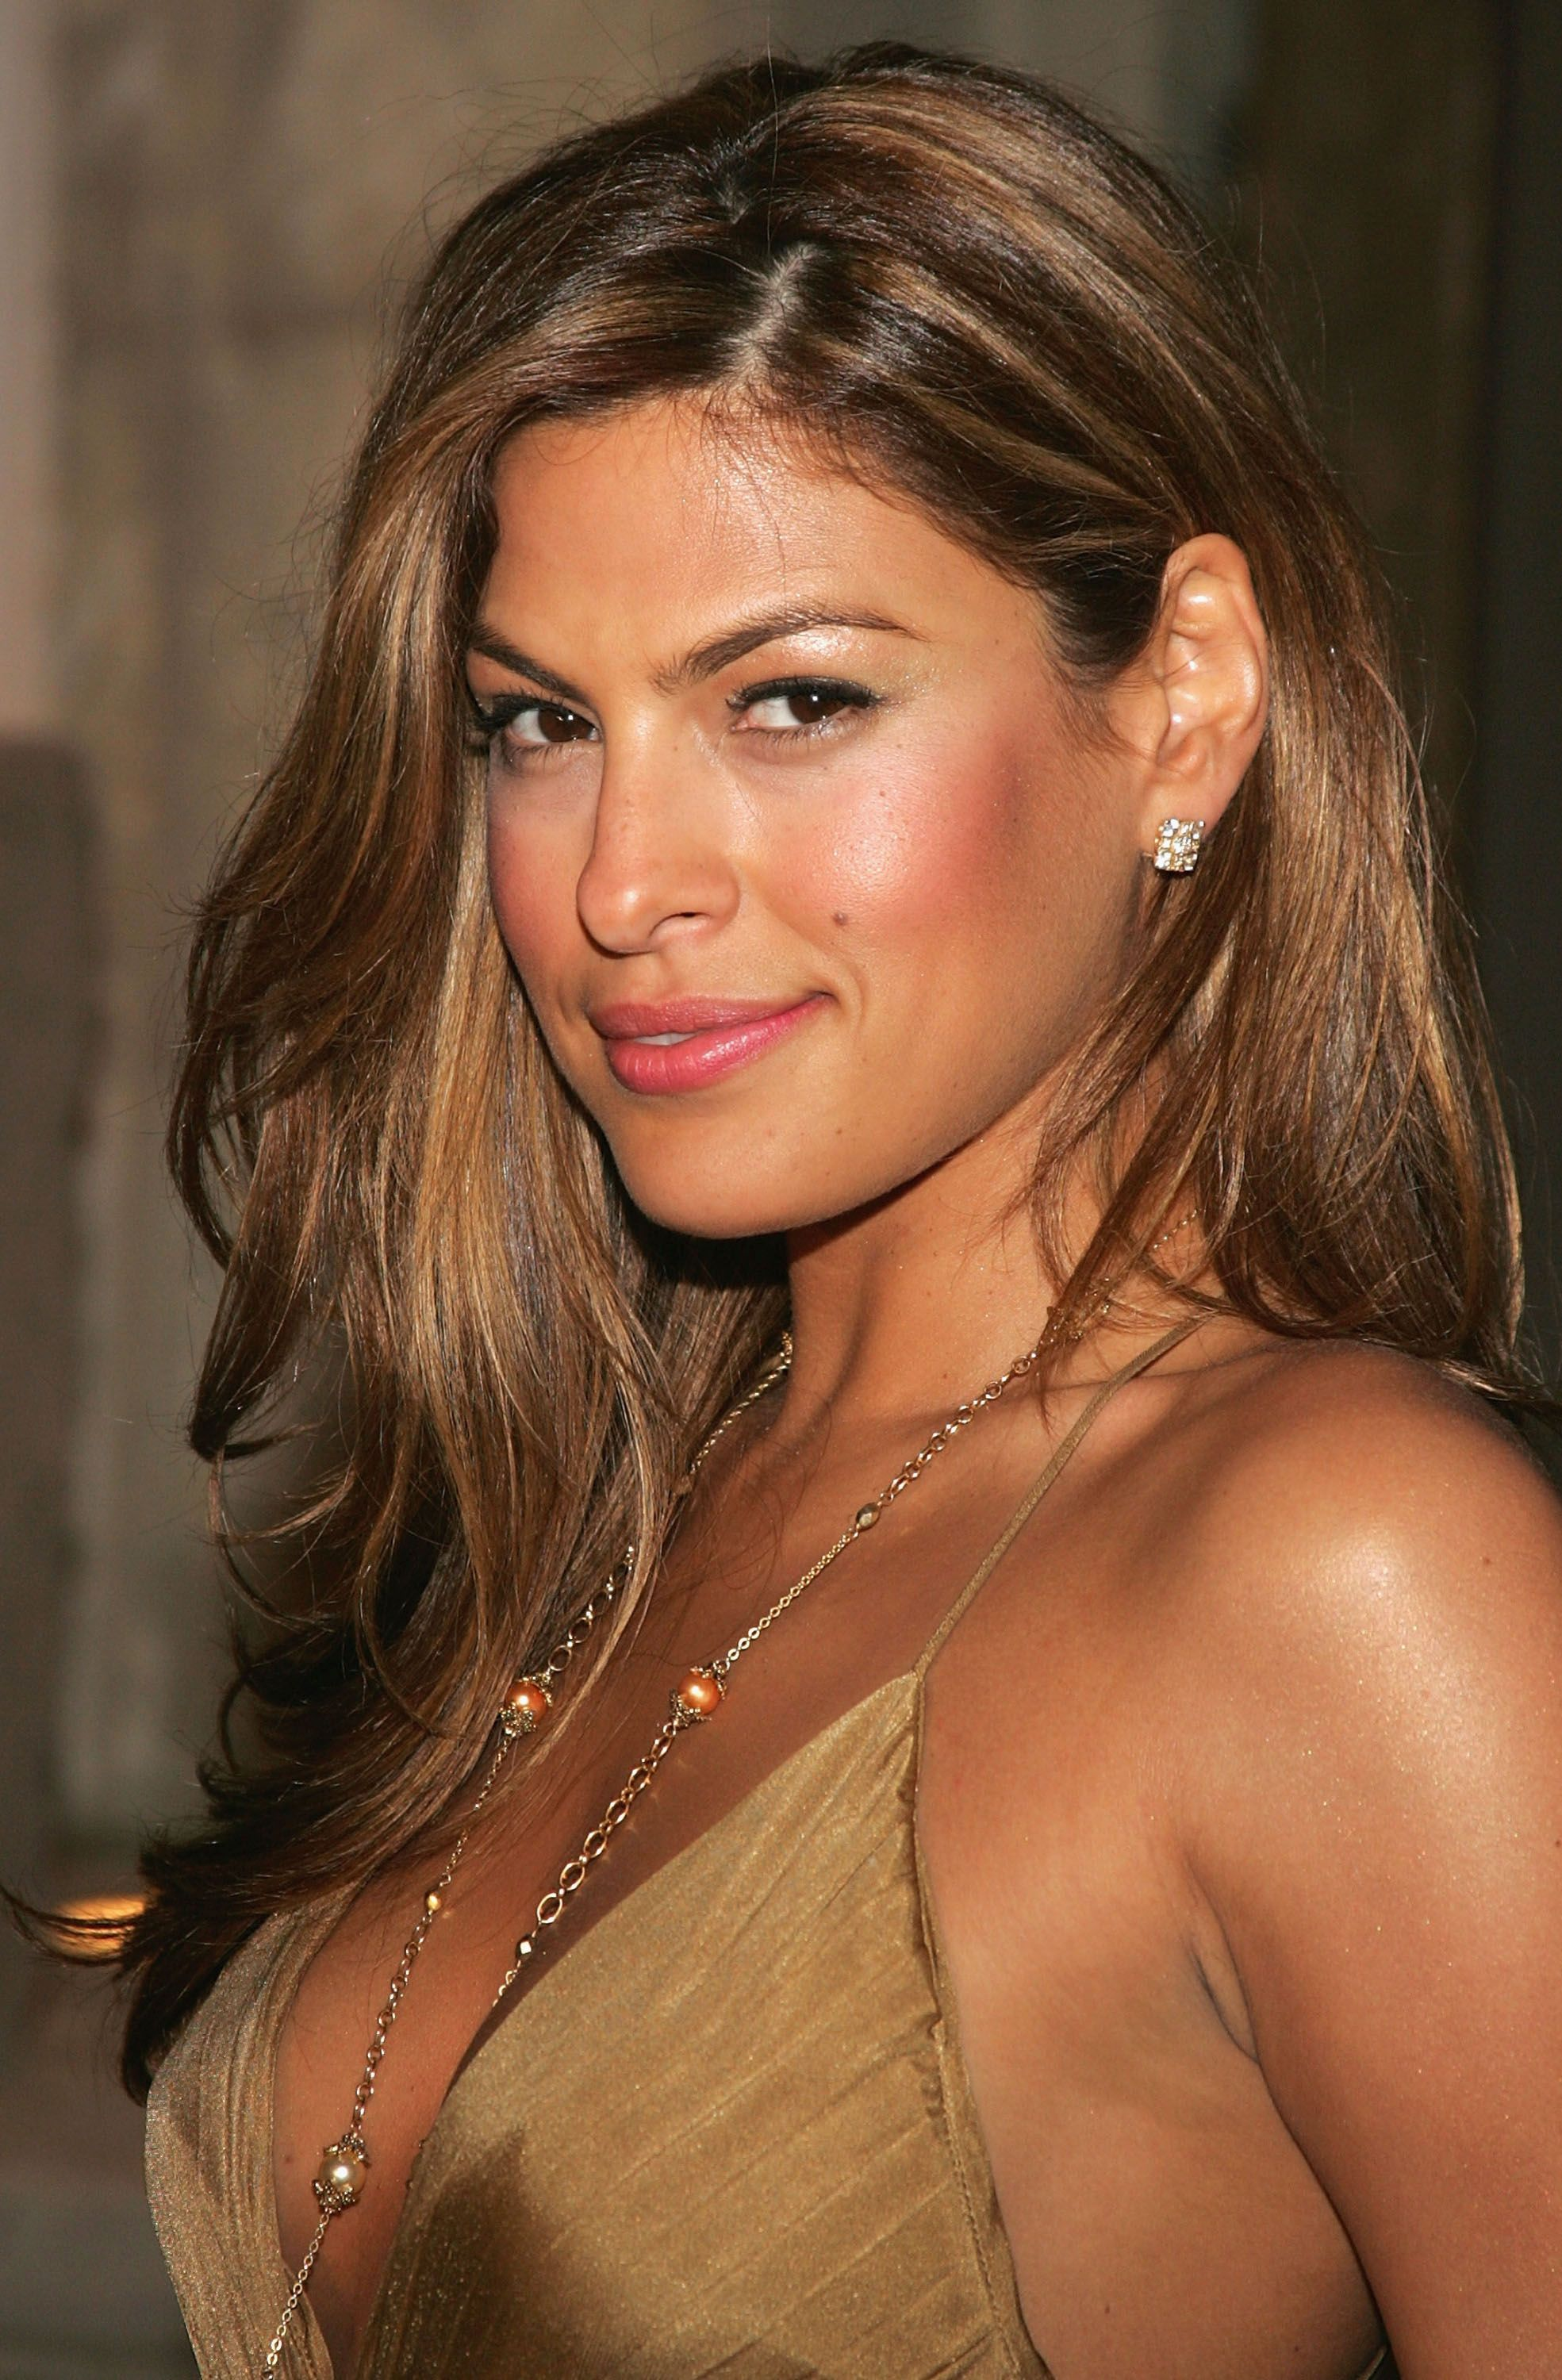 Eva Mendes Hair Color - Hair Colar And Cut Style |Eva Mendes Hair Color